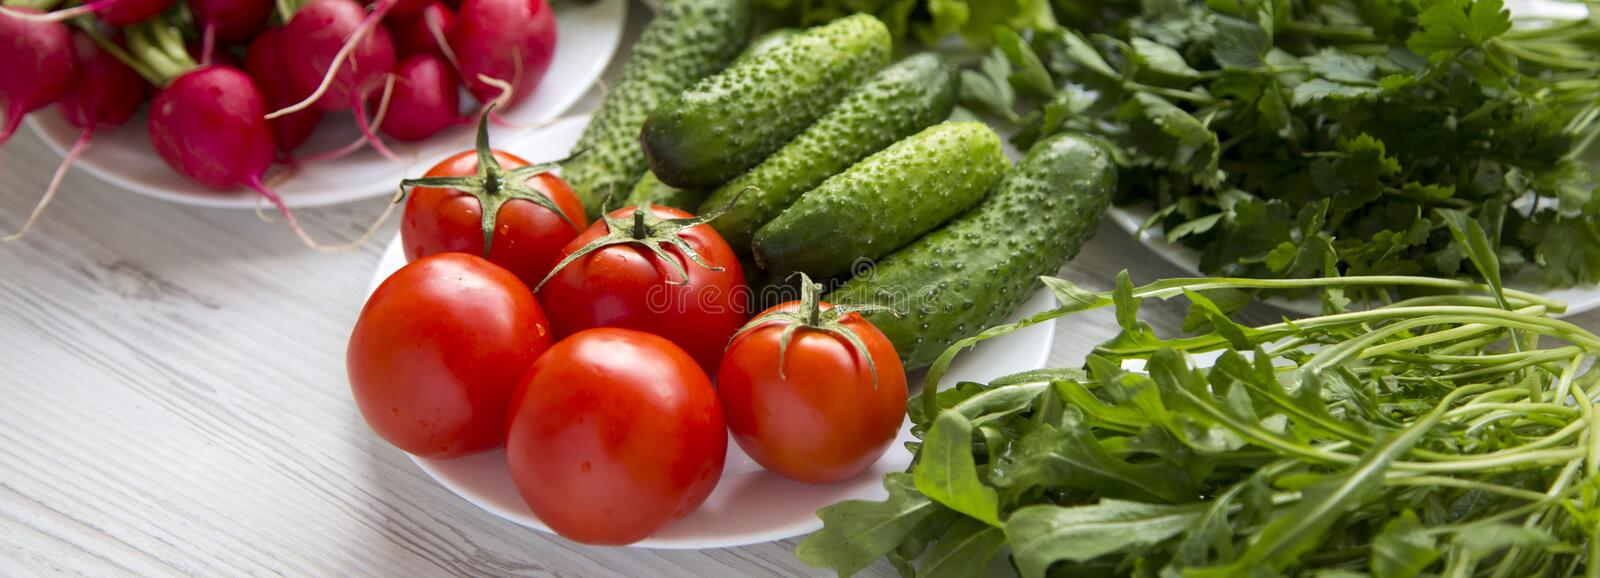 Set of various fresh ingredients for salad making: tomatoes, radish, cucumber, arugula, lettuce, side view. Healthy food concept. royalty free stock photos